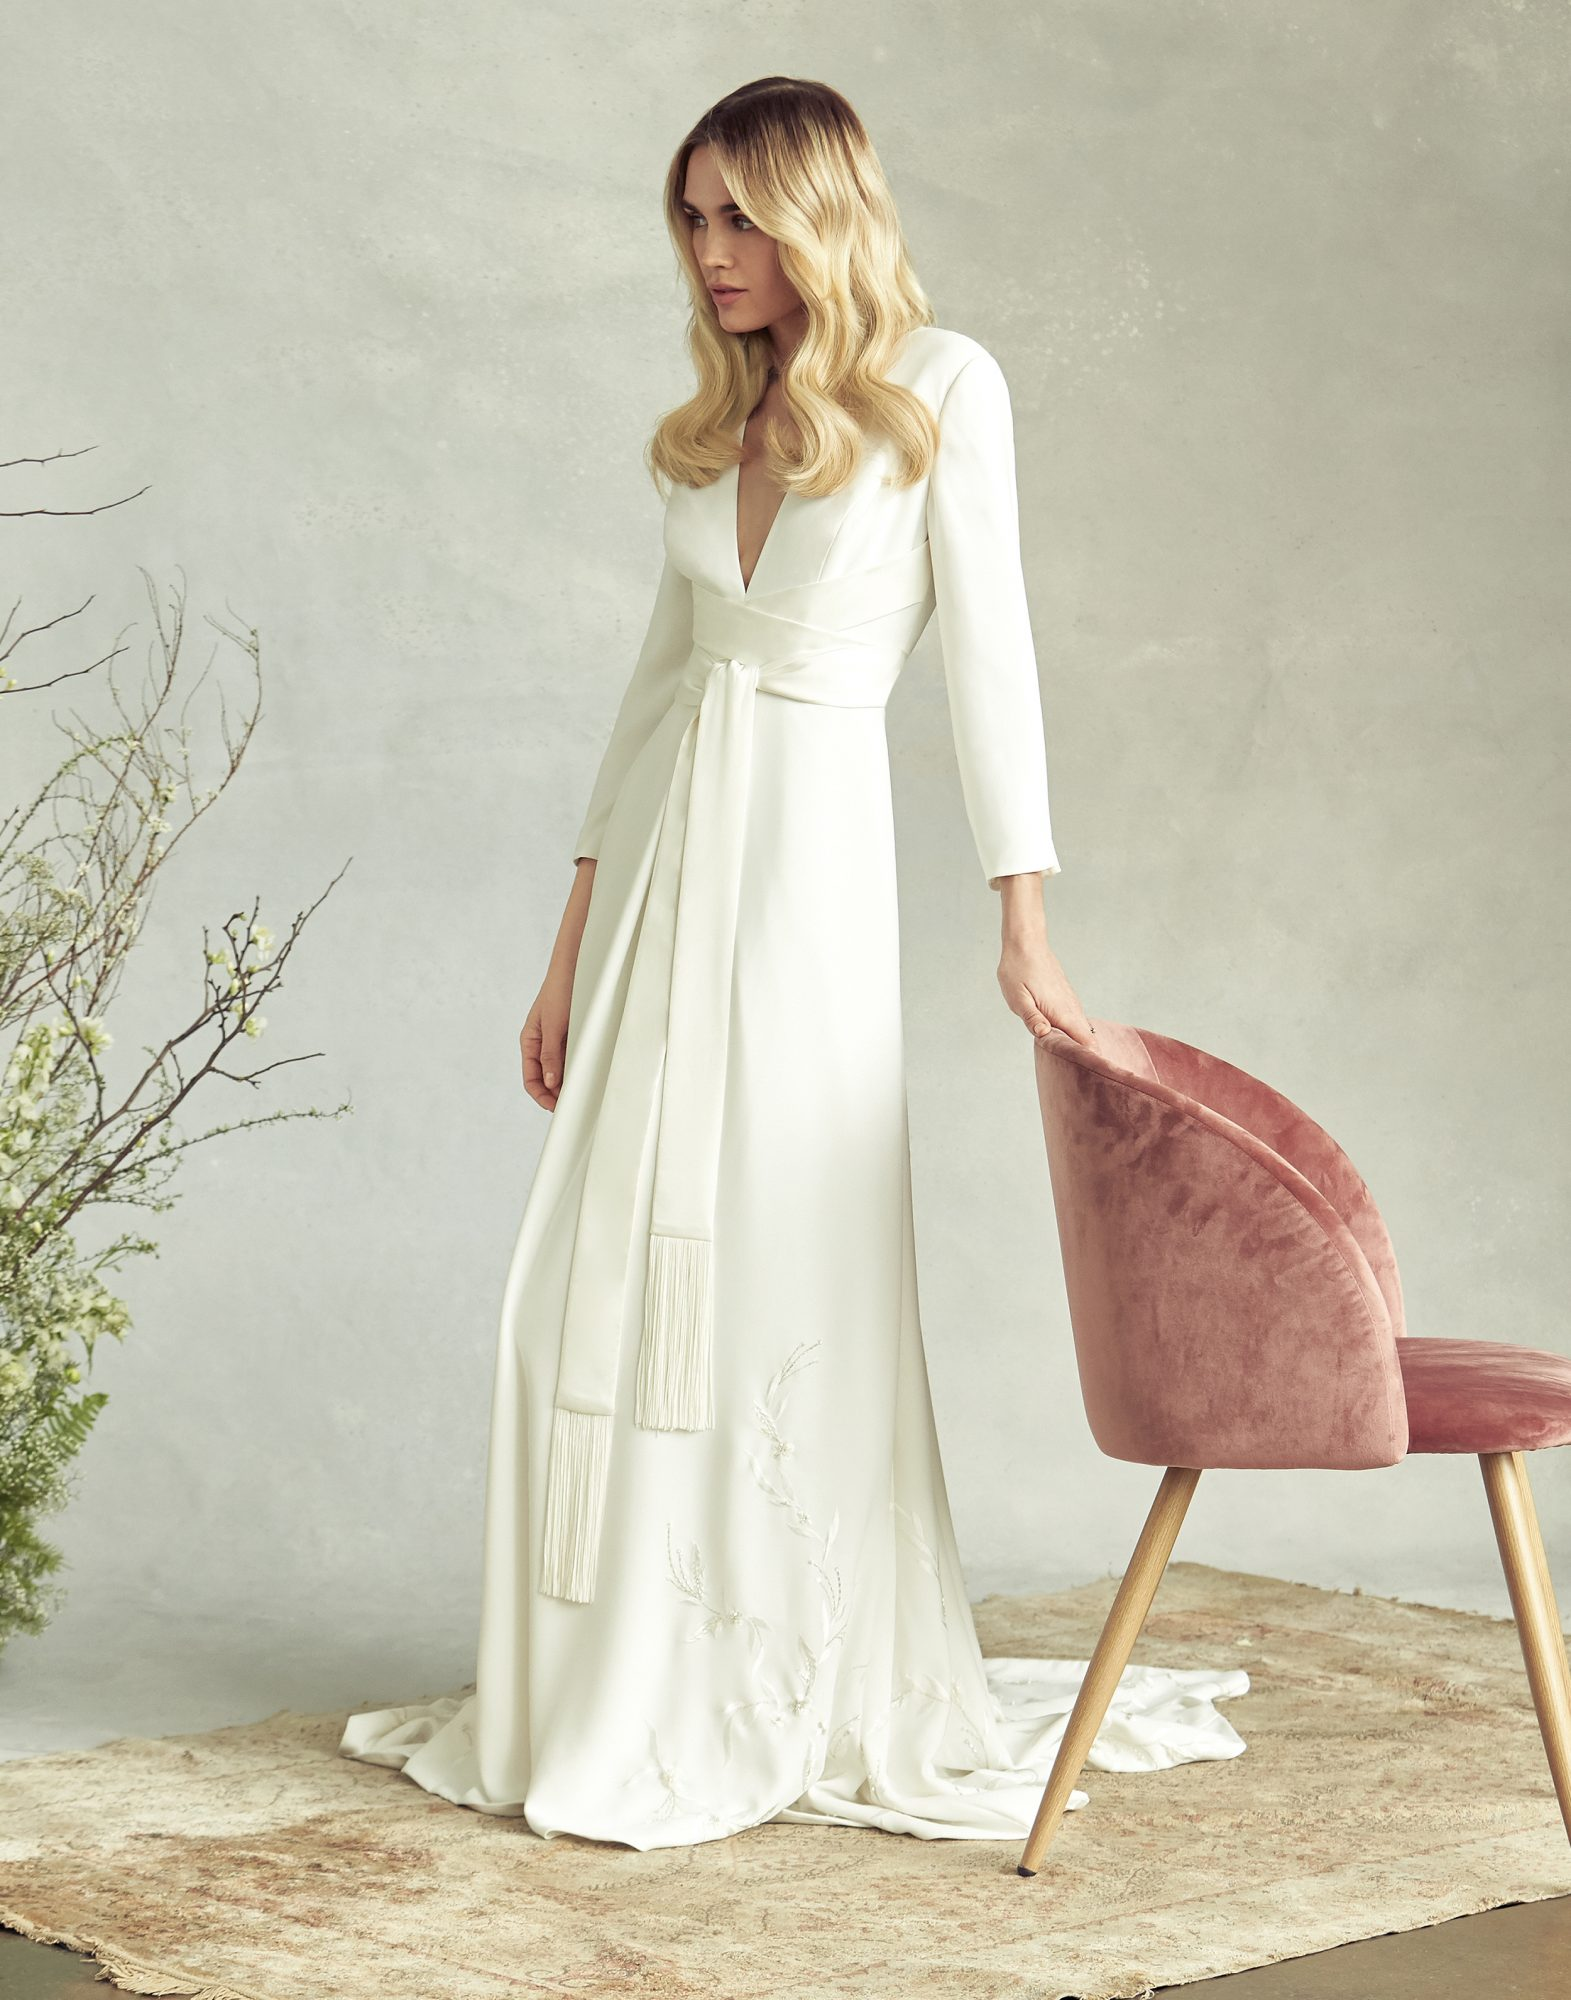 savannah miller v-neck three-quarter length sleeves wedding dress spring 2020